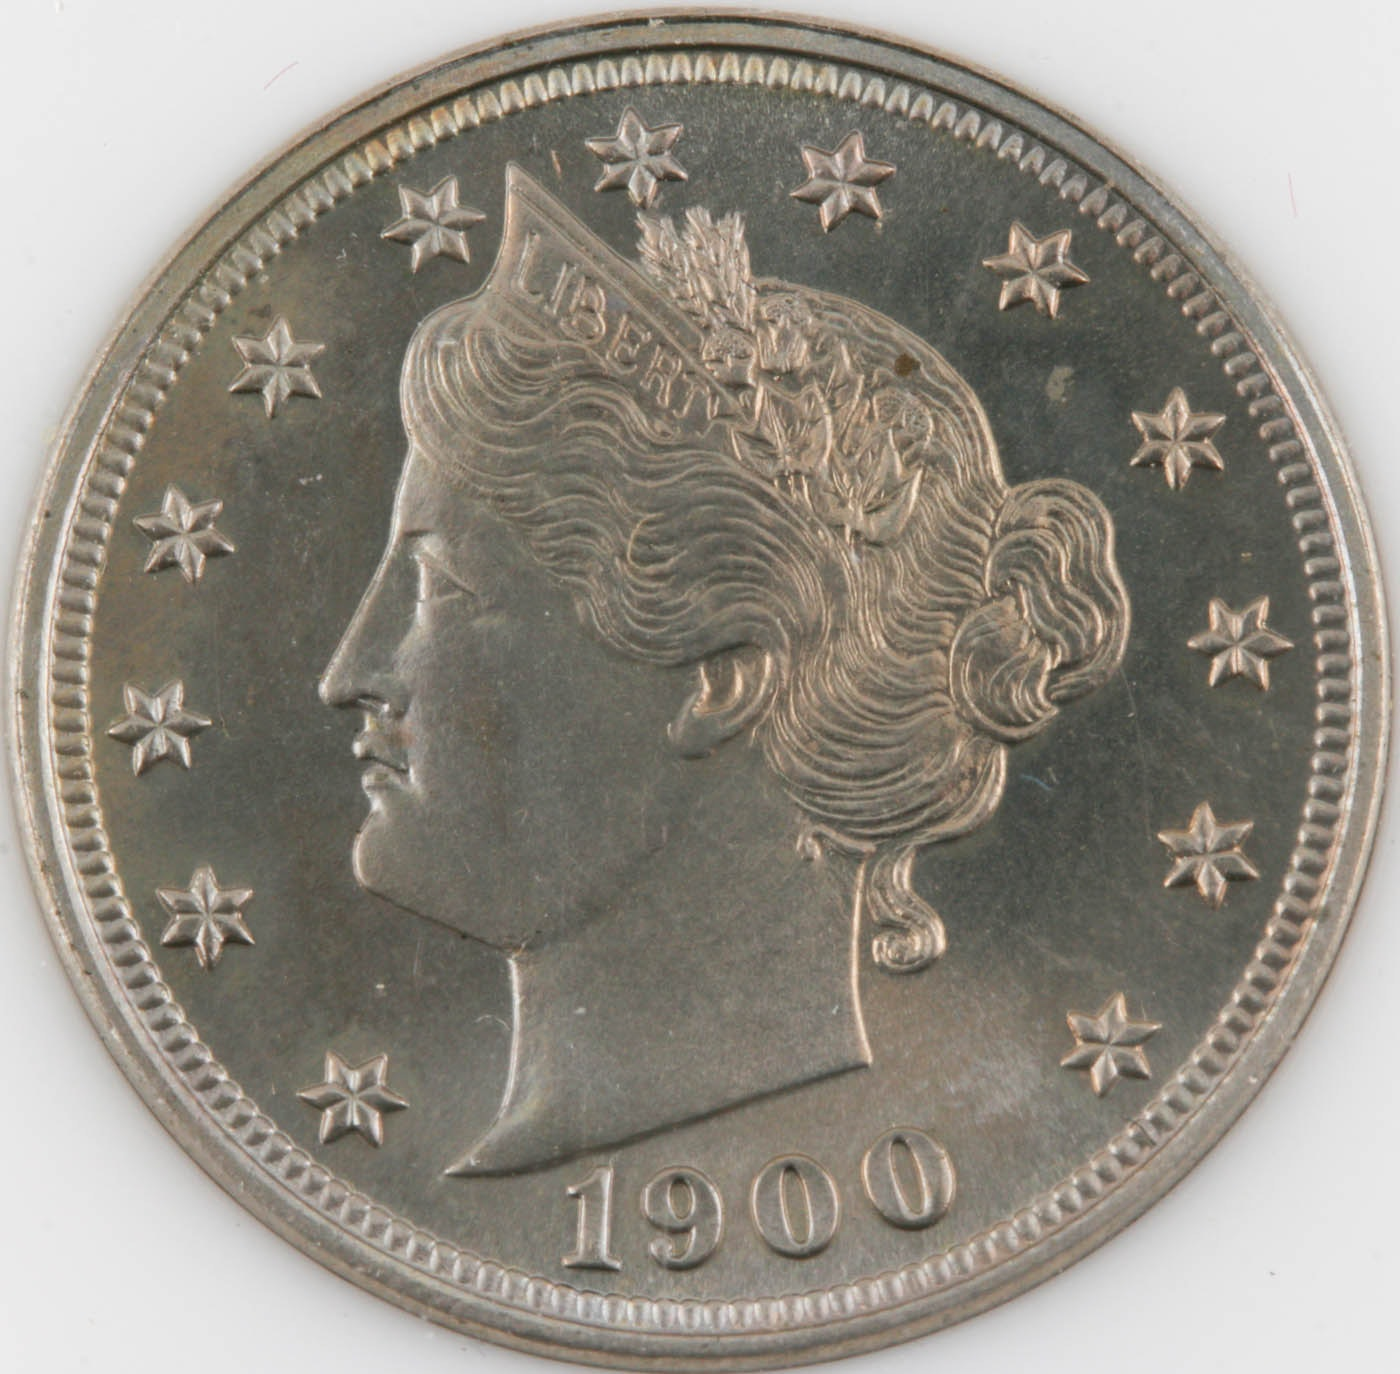 1900 Liberty Head Nickel Proof Coin